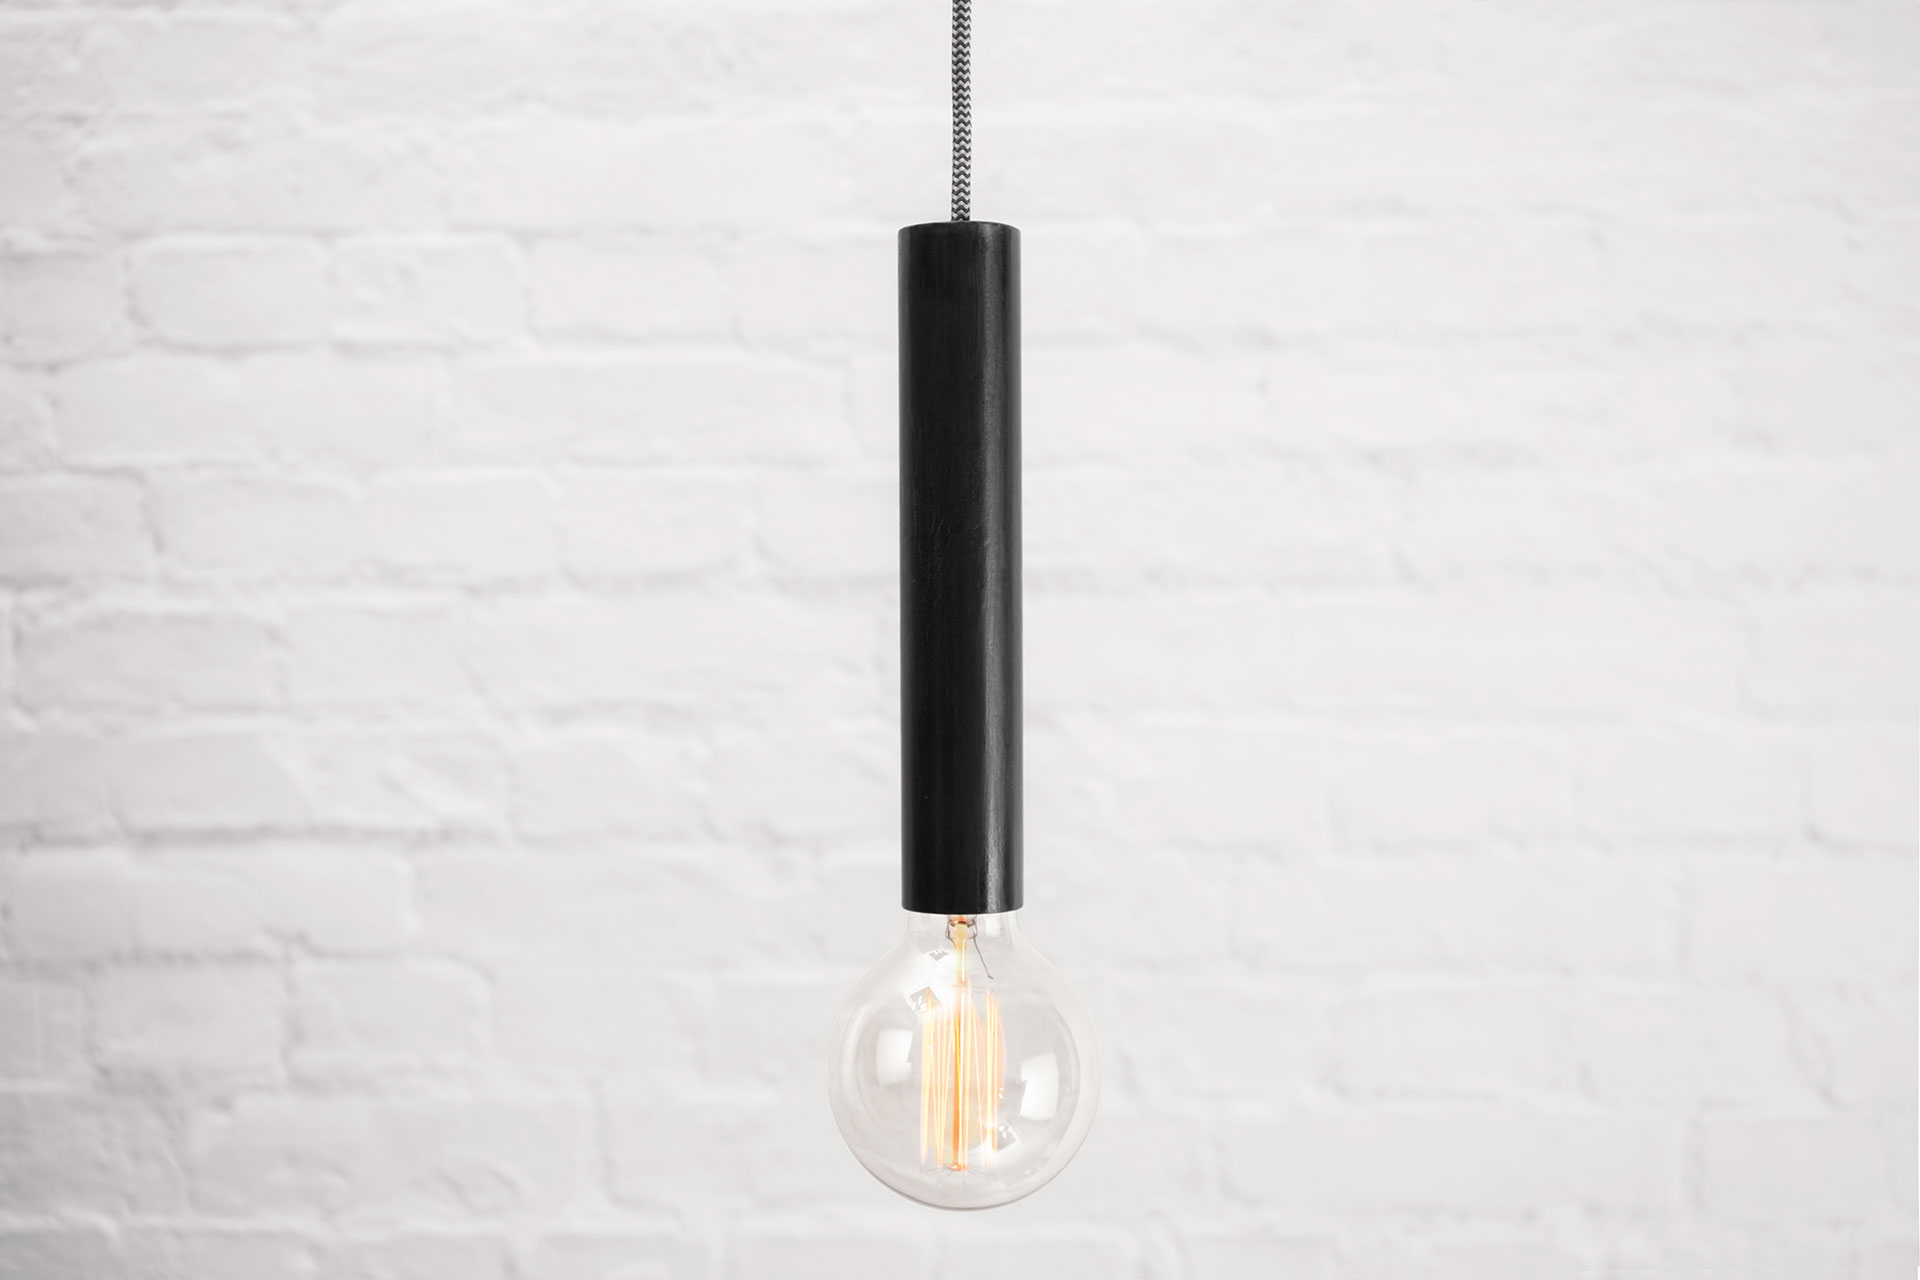 Industrial design pendant lamp in black patina with zig-zag cord and vintage Edison bulb